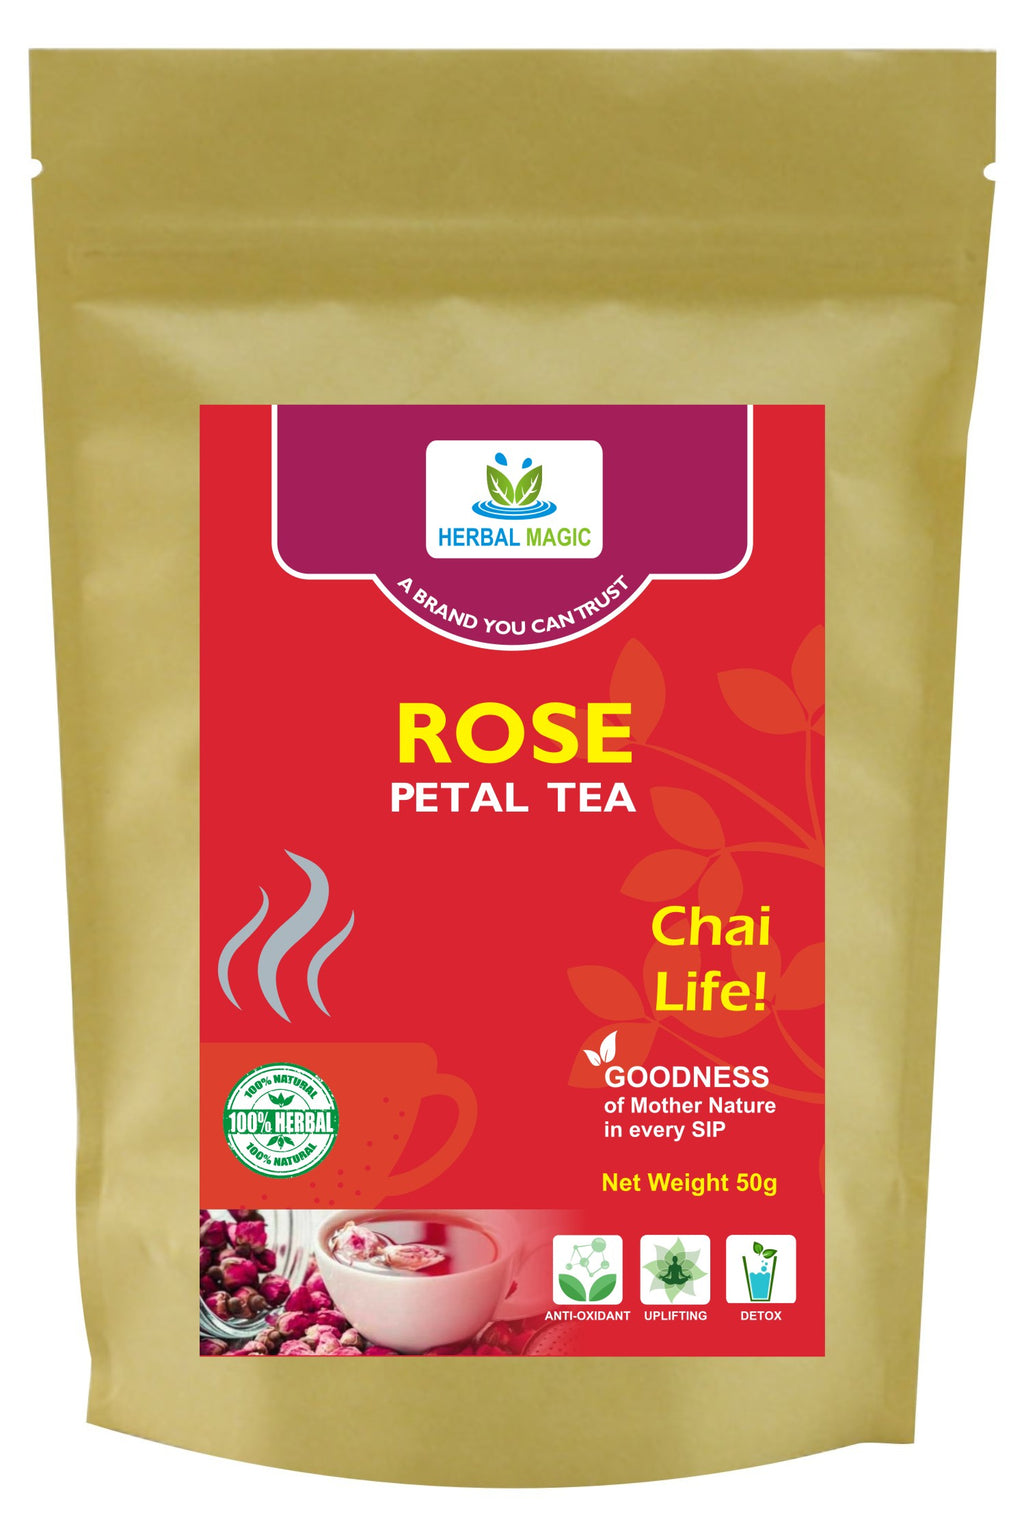 Herbal Magic Rose Petal Loose Leaf Tea - Caffeine Free Herbal Tea - 100% Natural Healthy Rose Flower Tea - Non-GMO, Vegan Free, Tea Pack, 50g